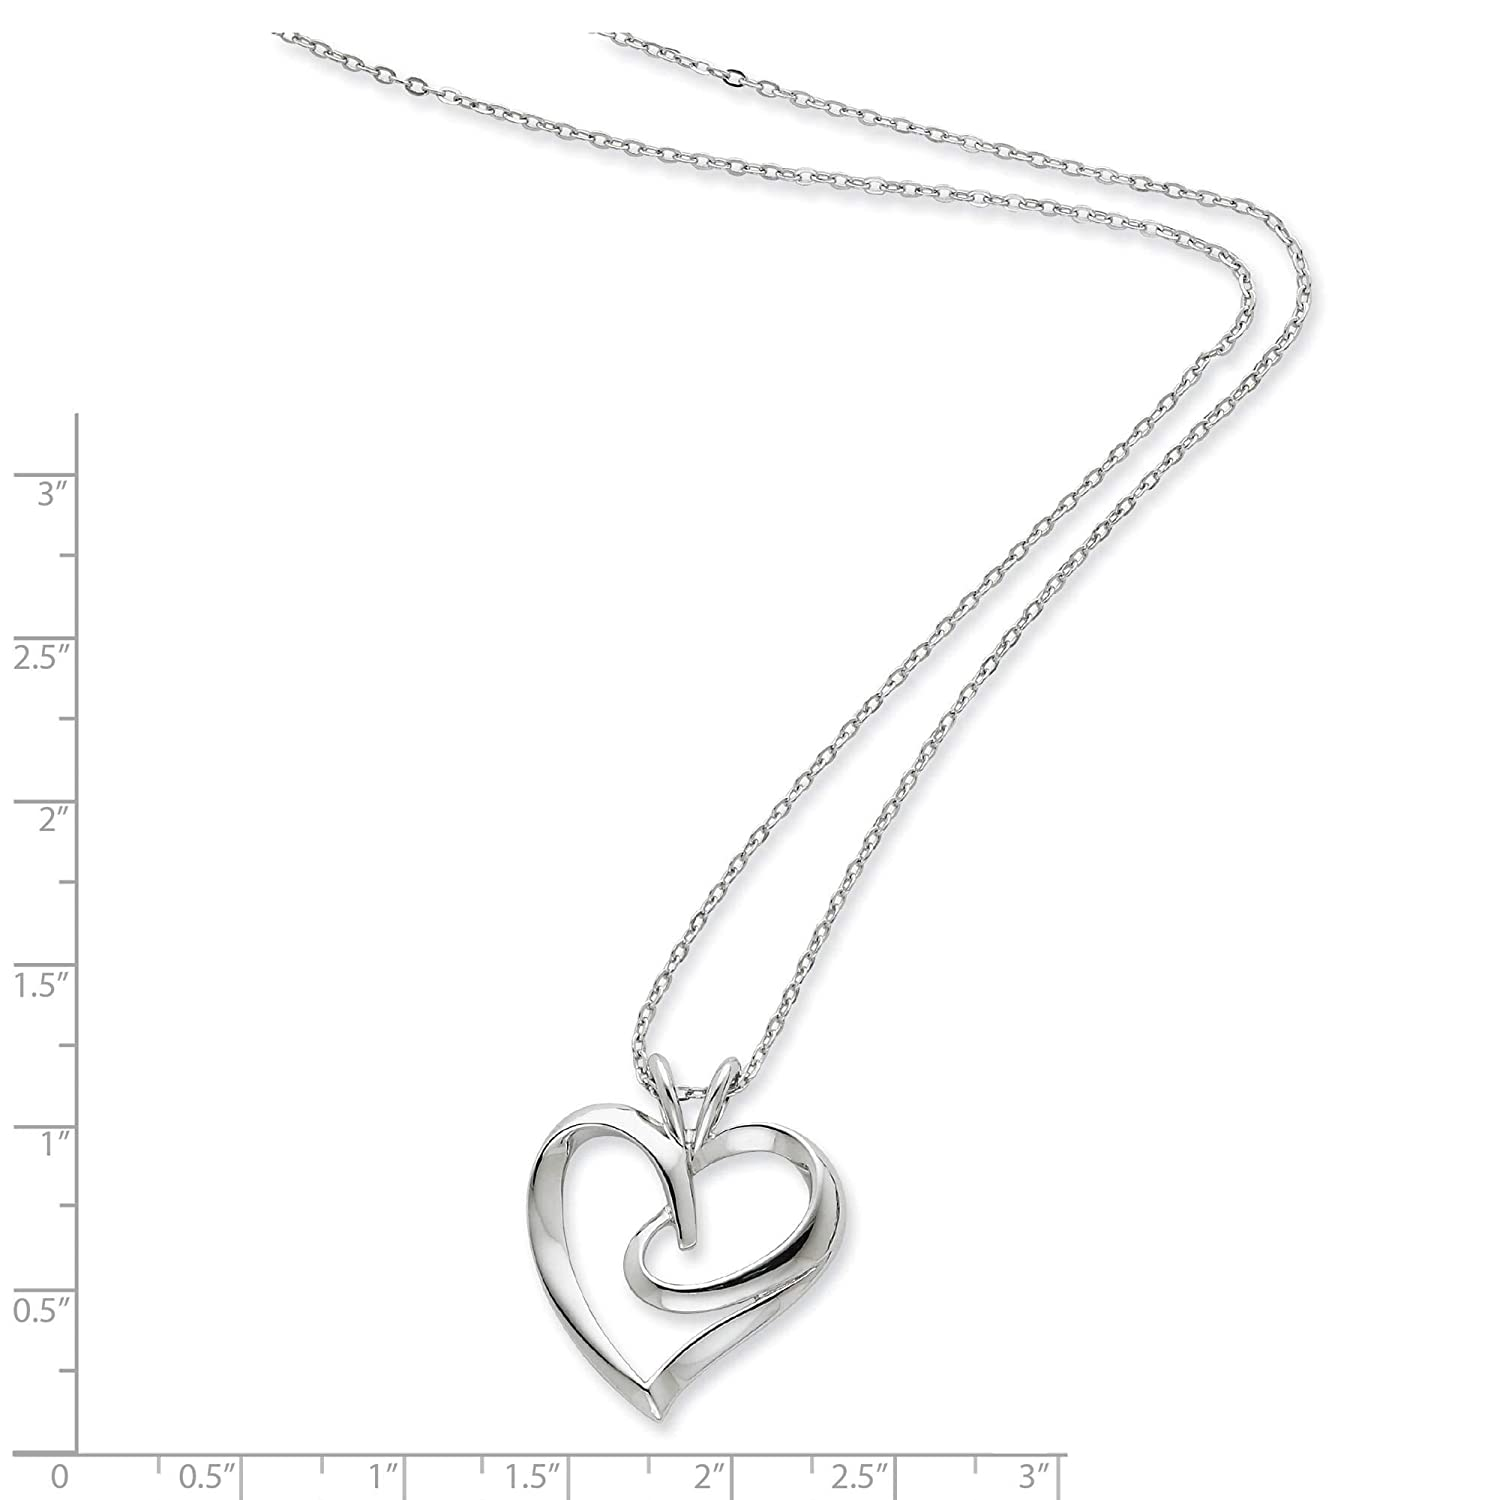 925 Sterling Silver Polished The Hugging Heart Pendant Necklace 18 by Sentimental Expressions